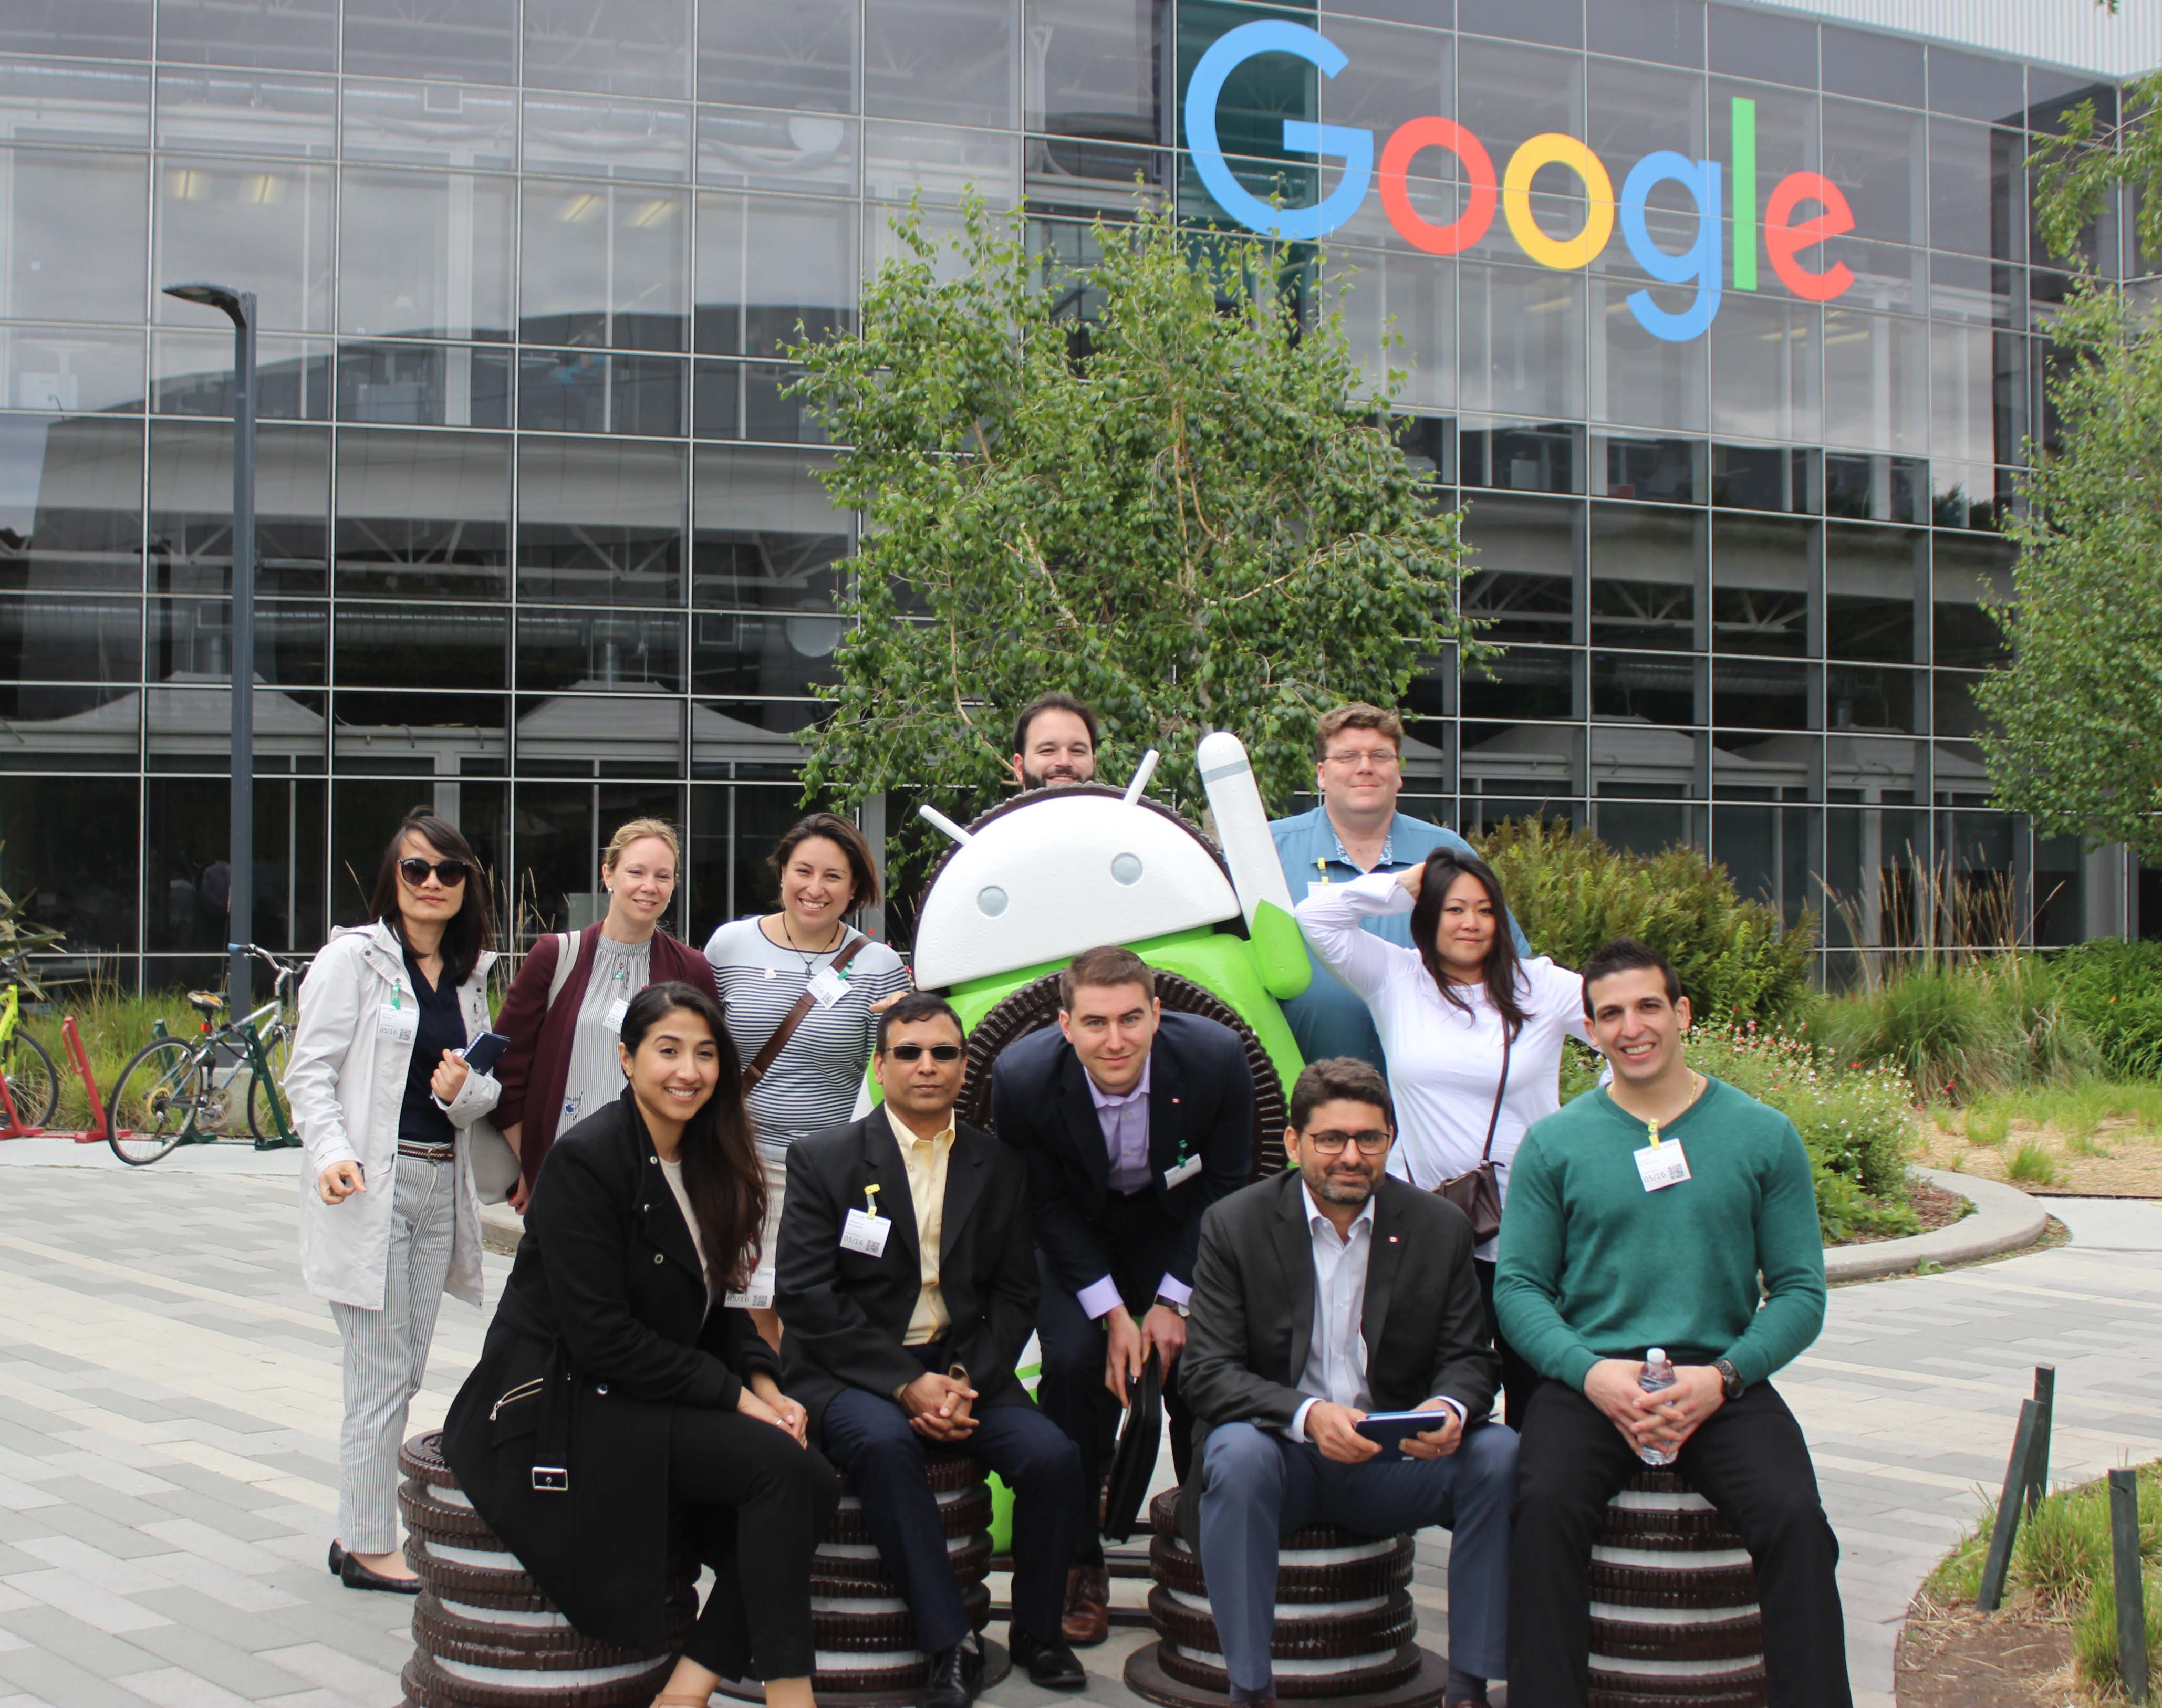 Class of 2019 at Google in May 2018